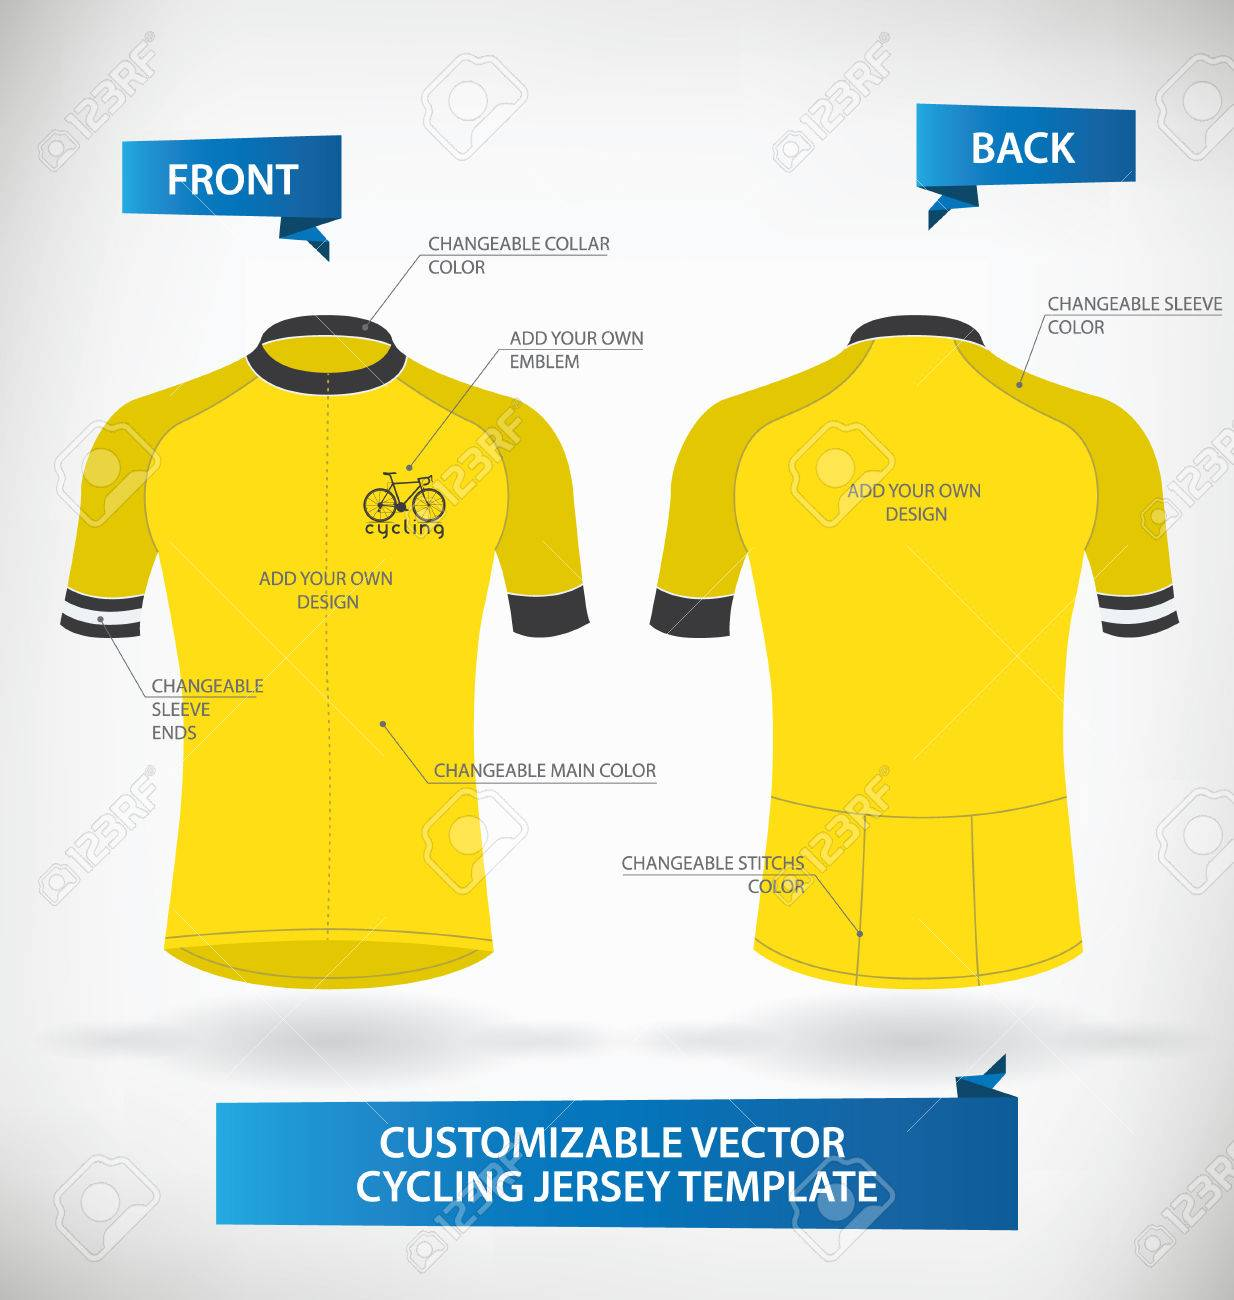 Customizable Vector Cycling Jersey Template Royalty Free Cliparts